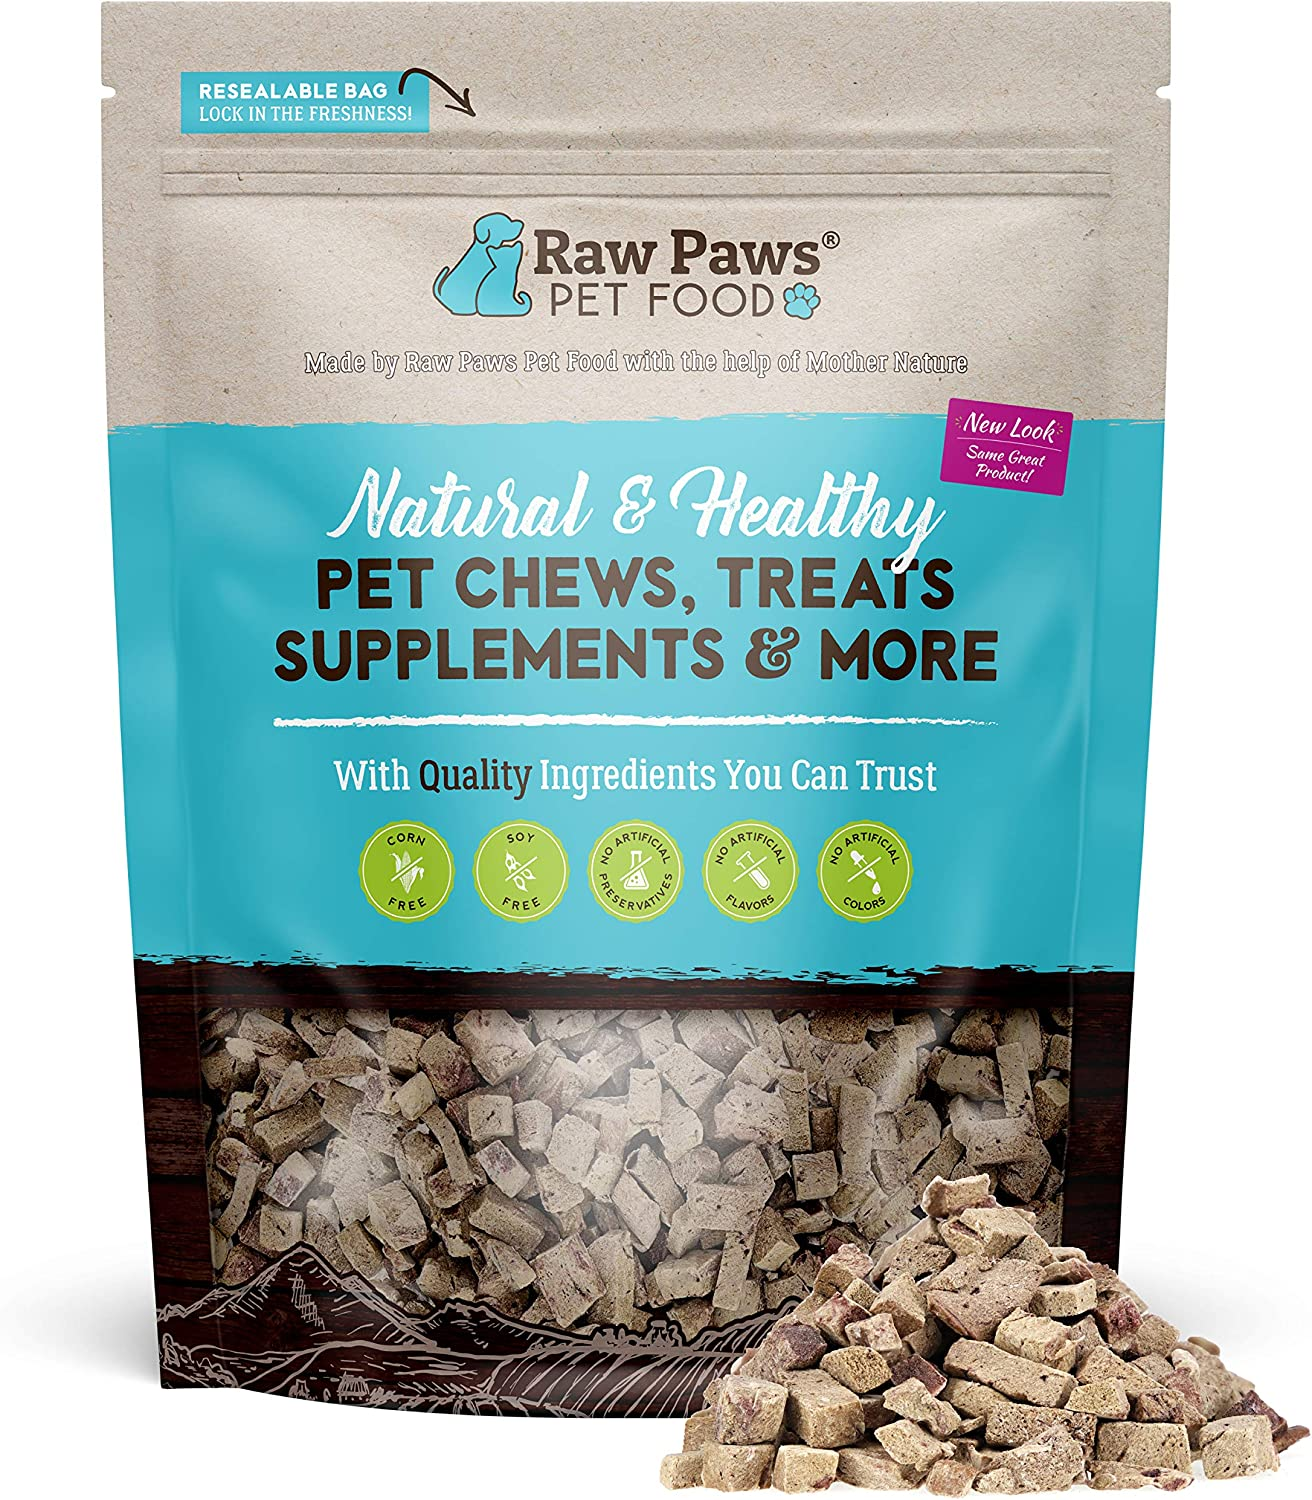 Raw Paws Freeze Dried Beef Liver Treats for Dogs & Cats - Made in USA, Real, Healthy, Grain-Free, Crunchy Dry Dog Liver Treats - Freeze Dried Dog Treats for Small to Large Dogs, Training Treats